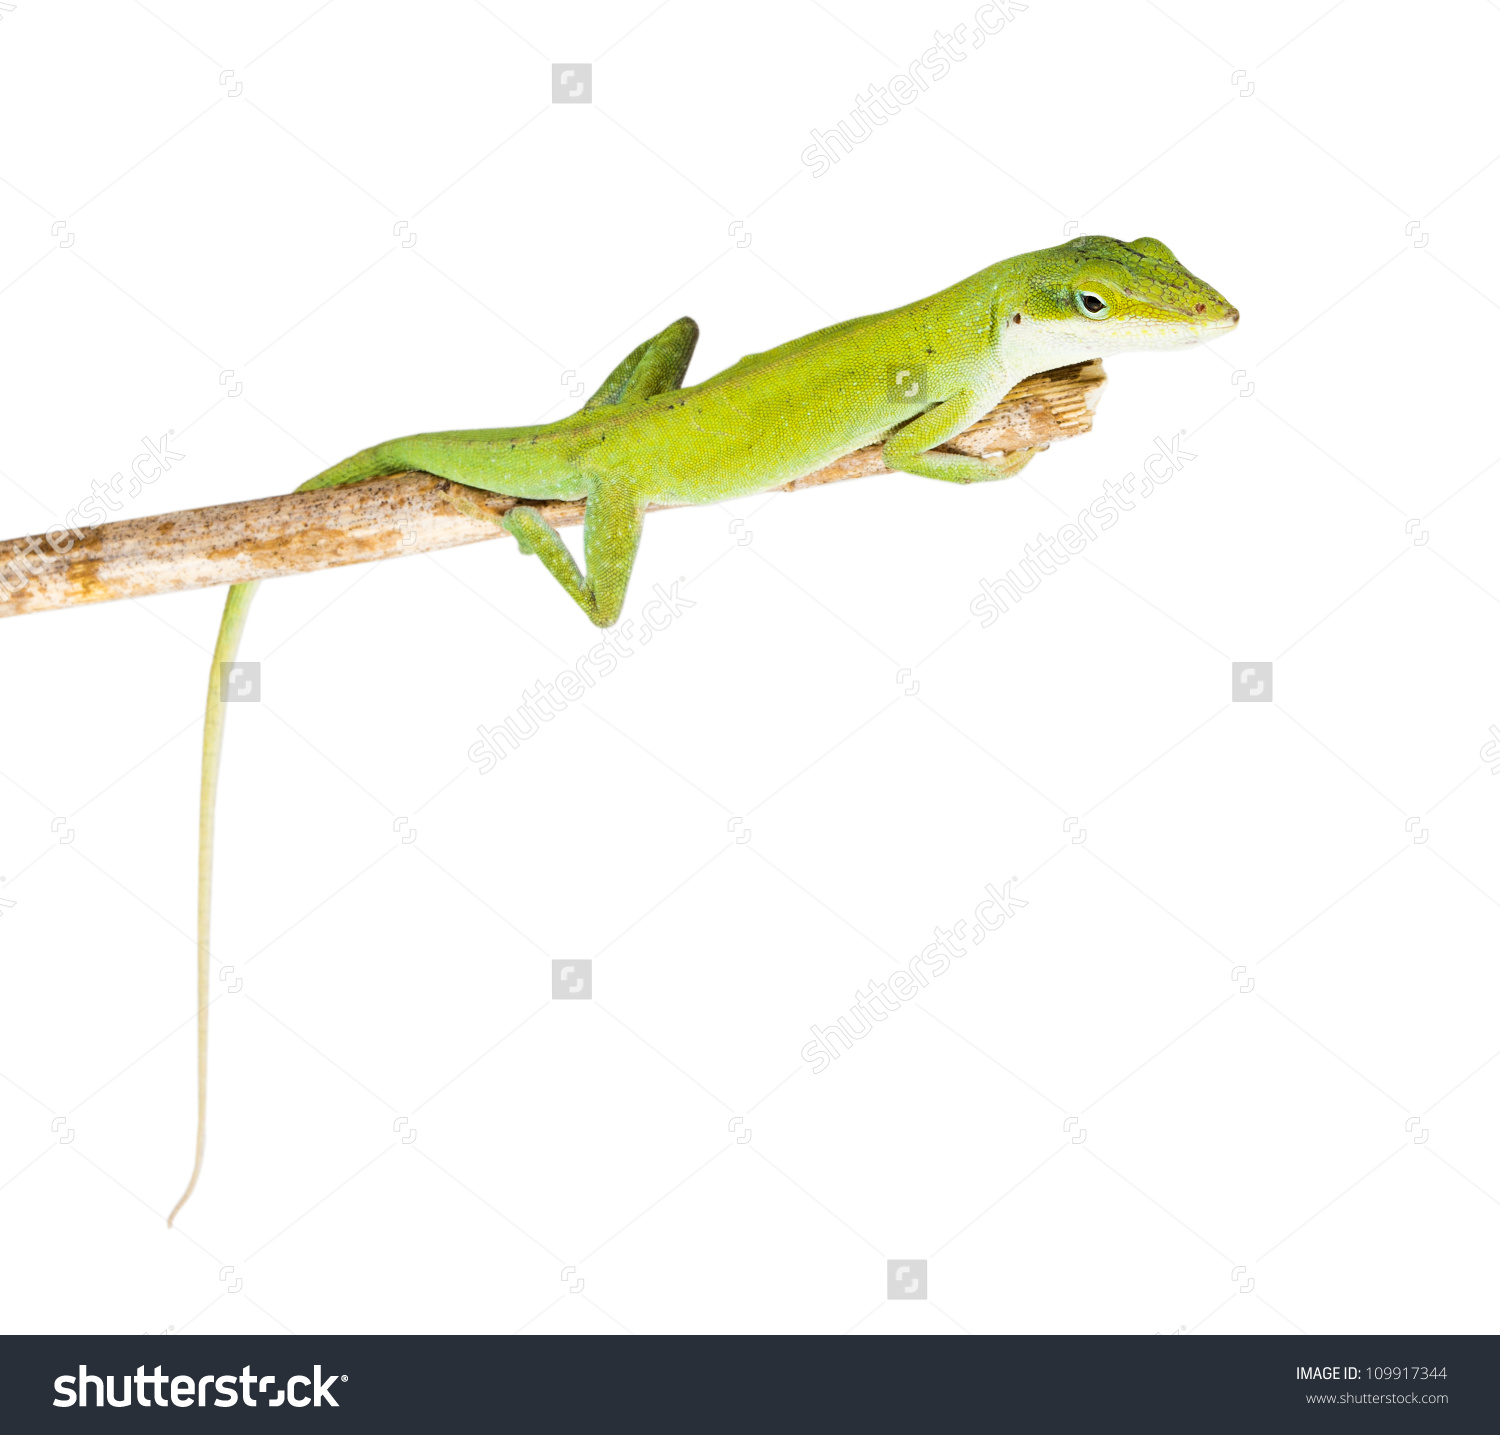 Green Anole clipart #3, Download drawings